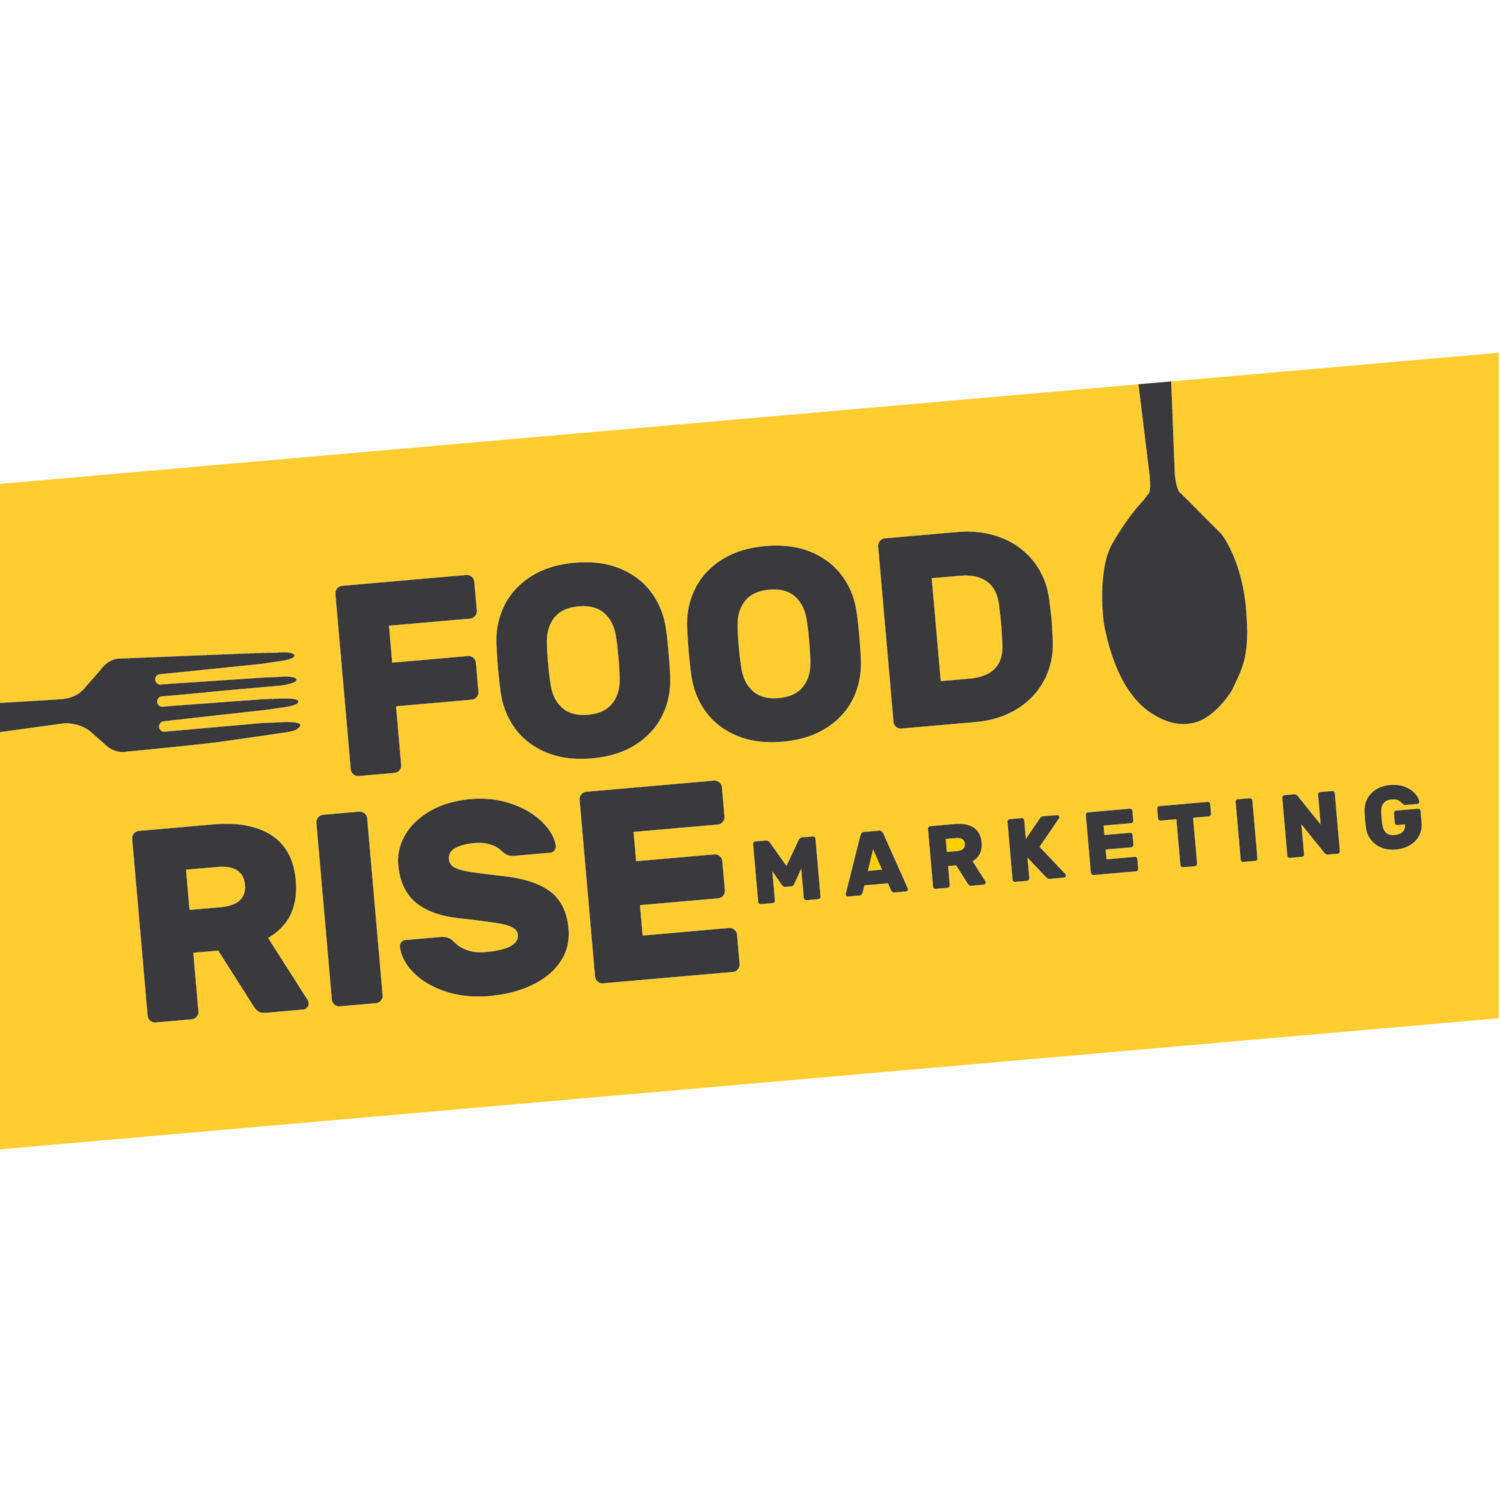 Food Rise Marketing